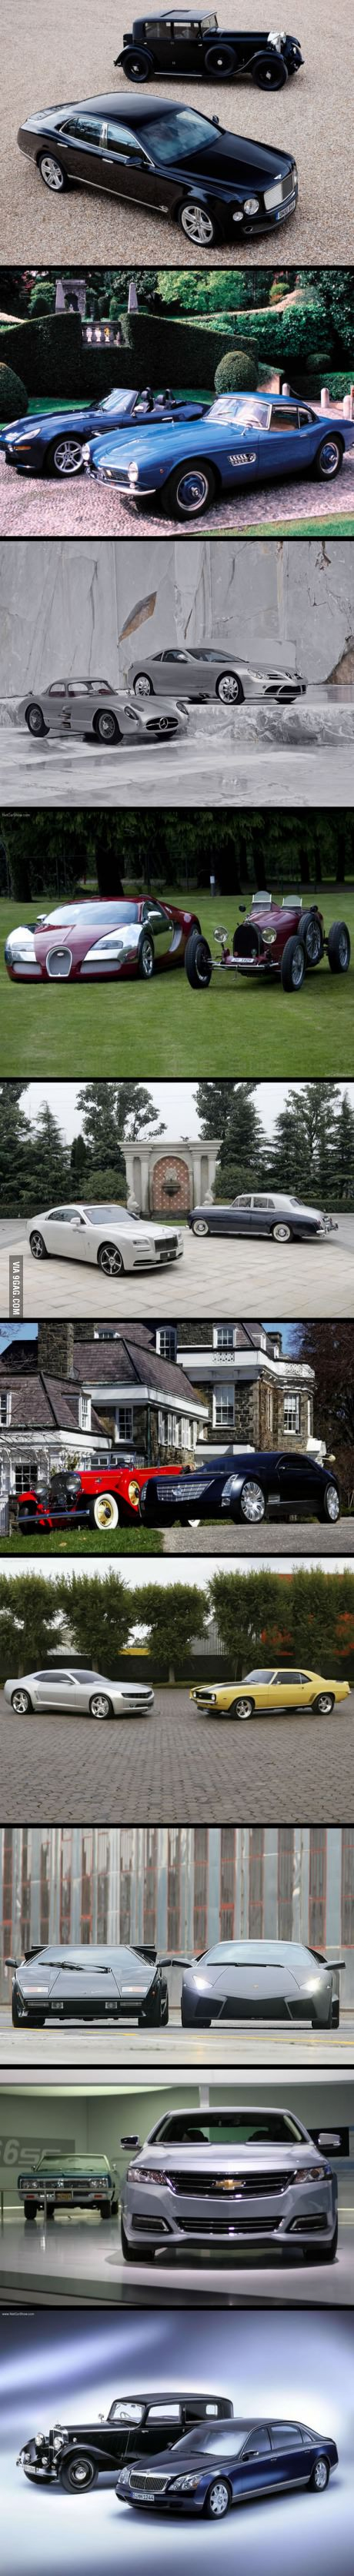 Car then and now.